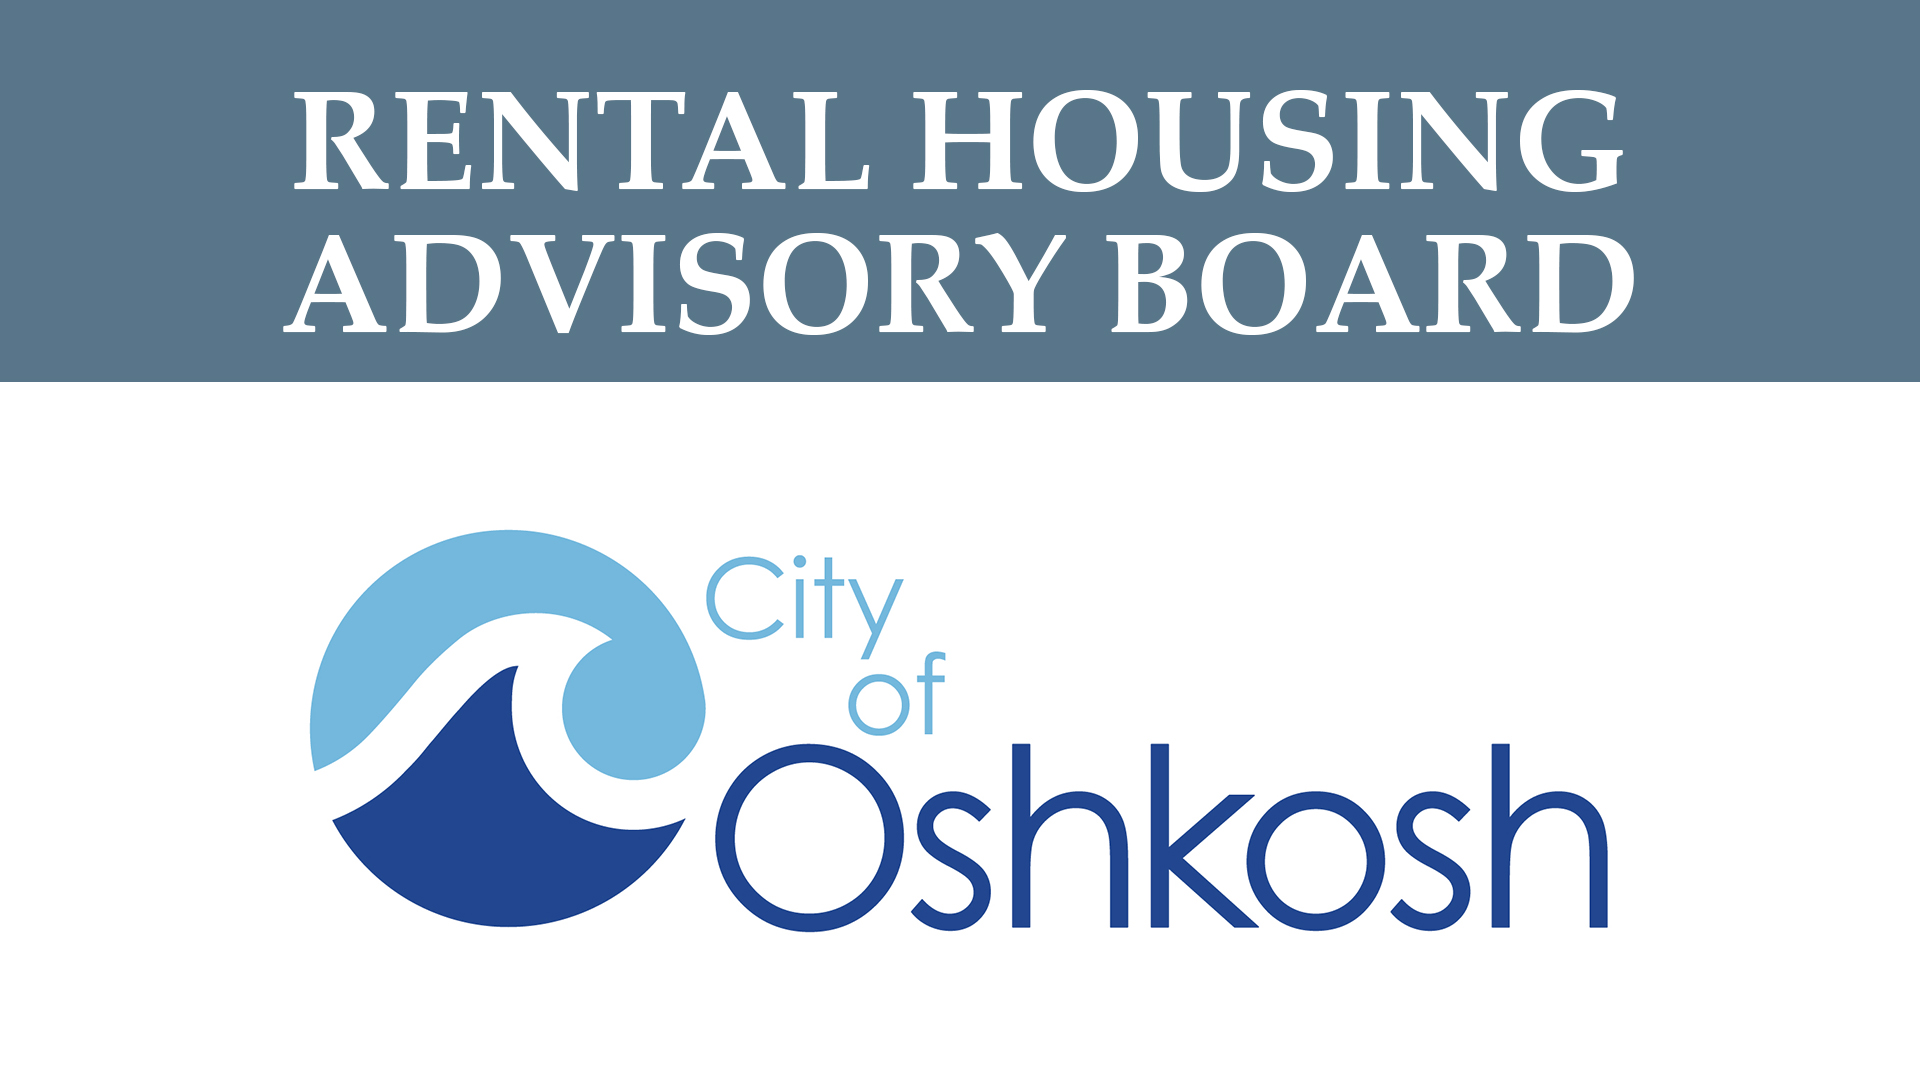 Rental Housing Advisory Board